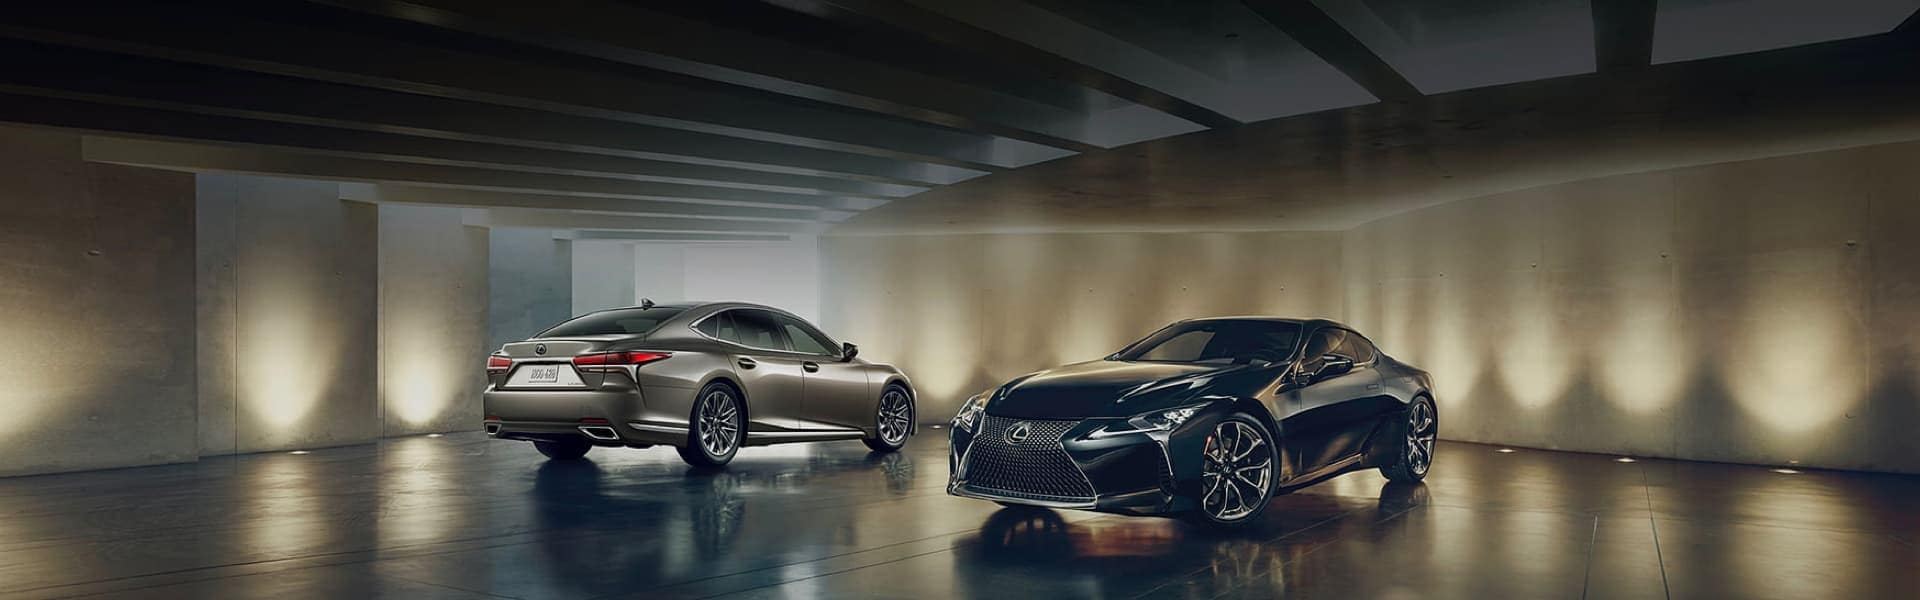 Two Lexus vehicles parked in a concrete showcase area with a highly reflective floor